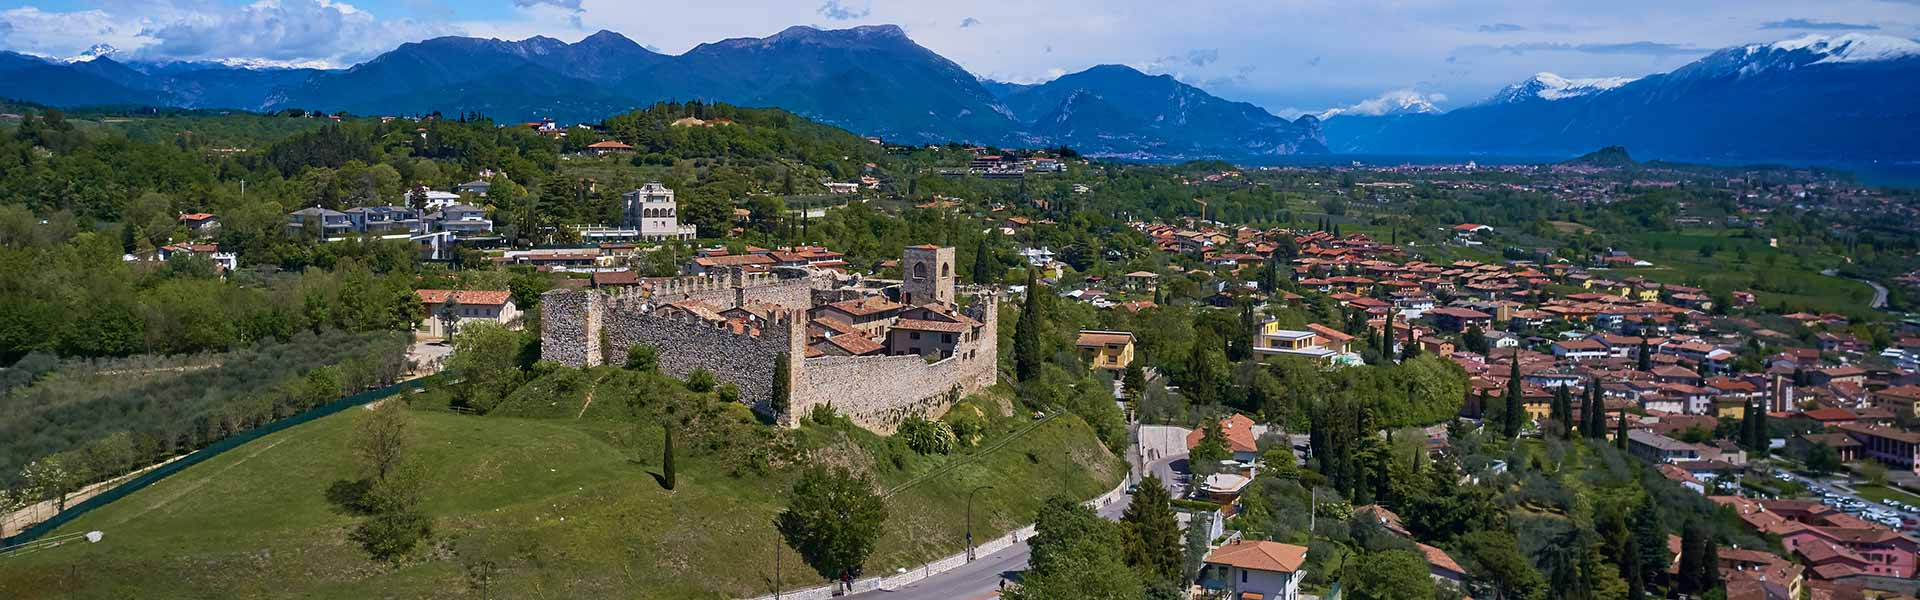 Enjoy a breathtaking view from the Padenghe castle